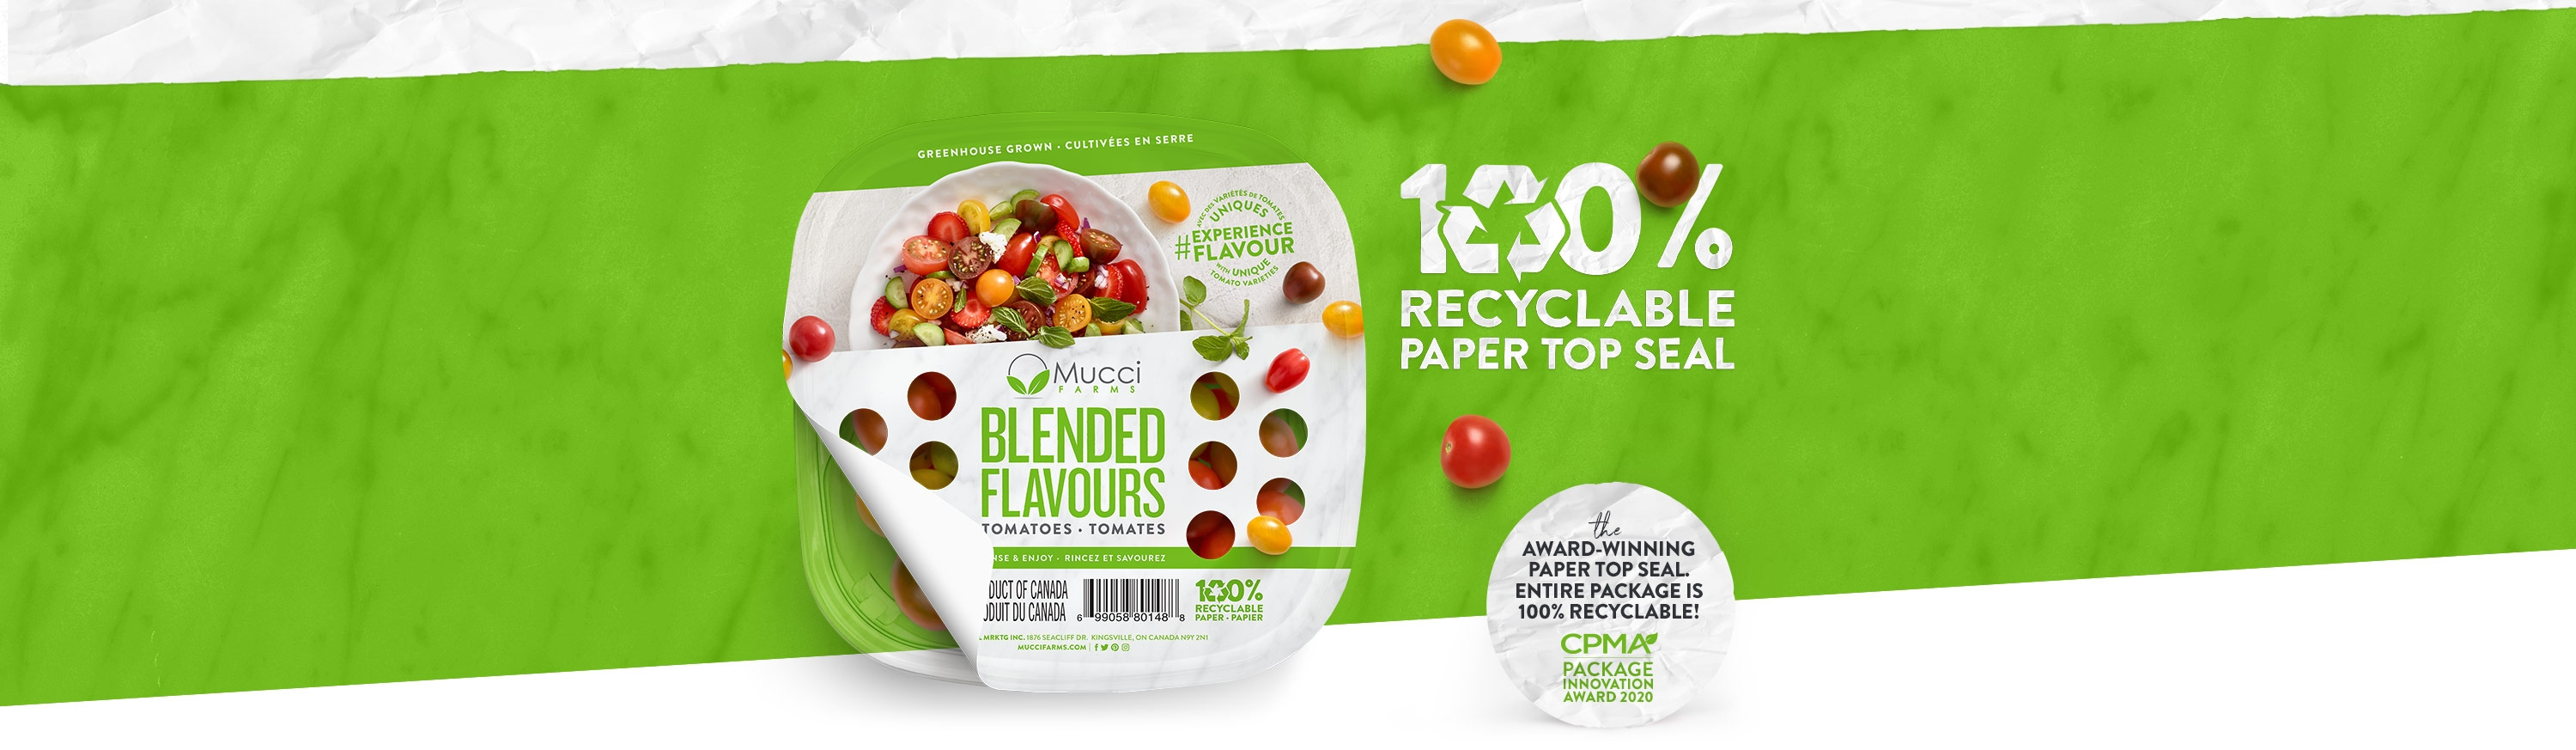 Paper Top Seal Package 100 Percent Recyclable new